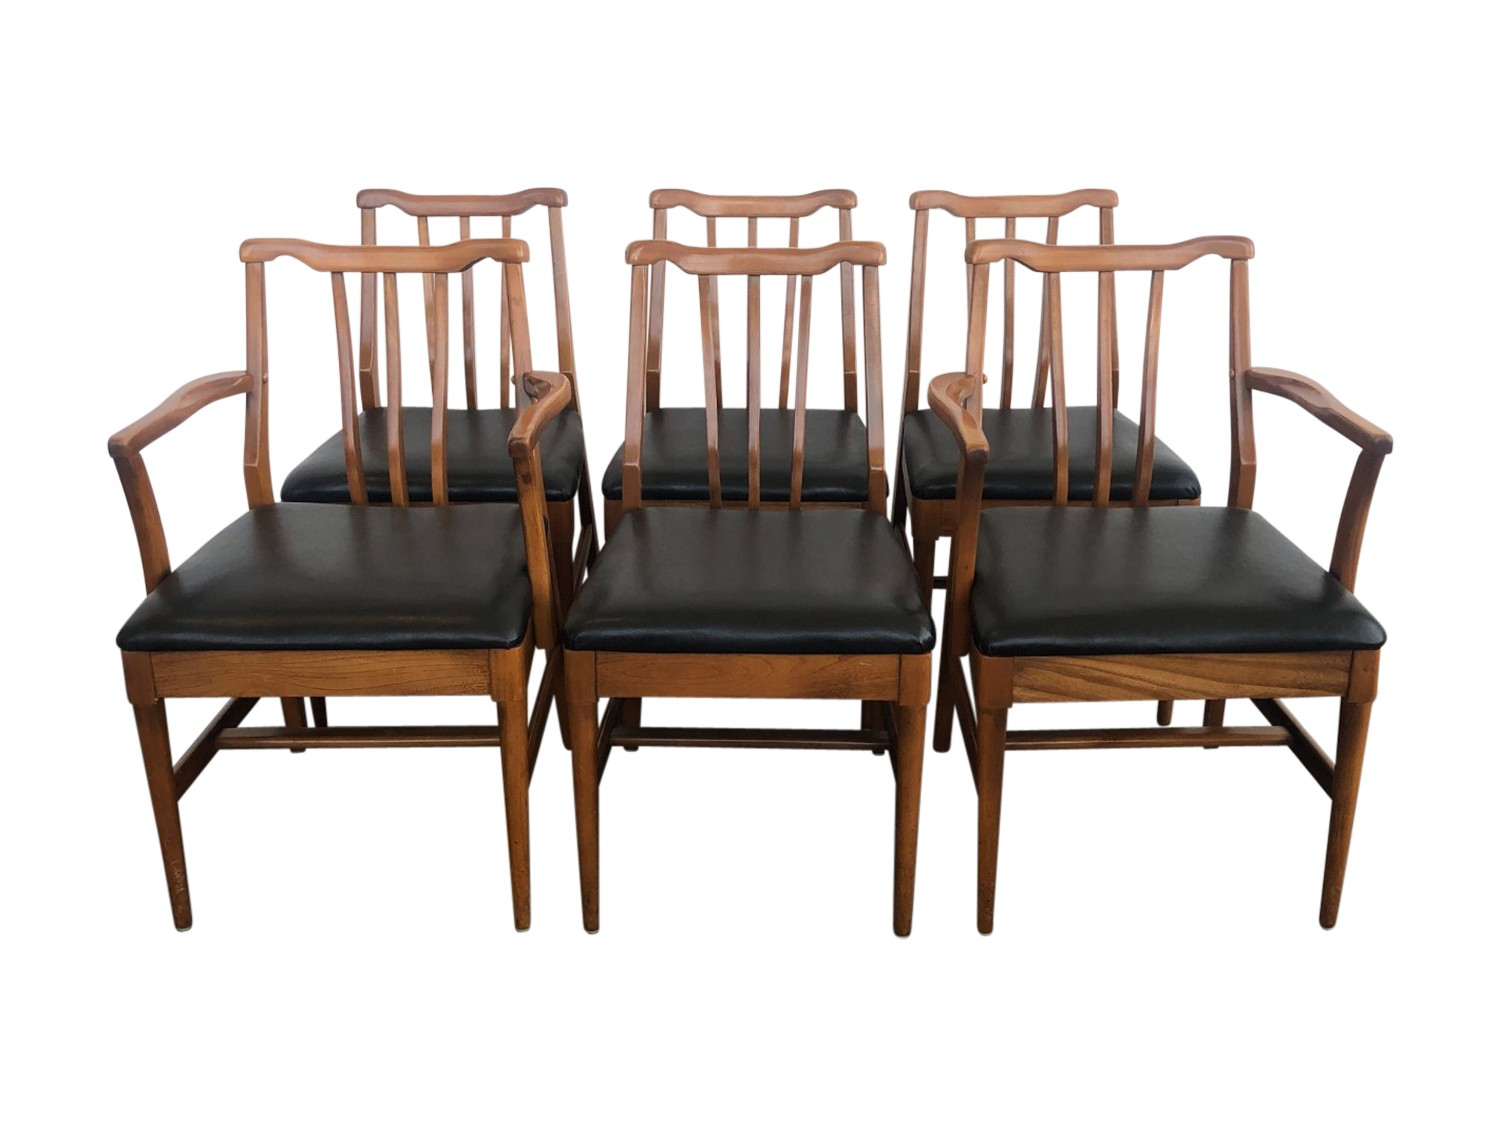 Dining Chair Set Of 6 Broyhill Mid Century Dining Chairs Set Of 6